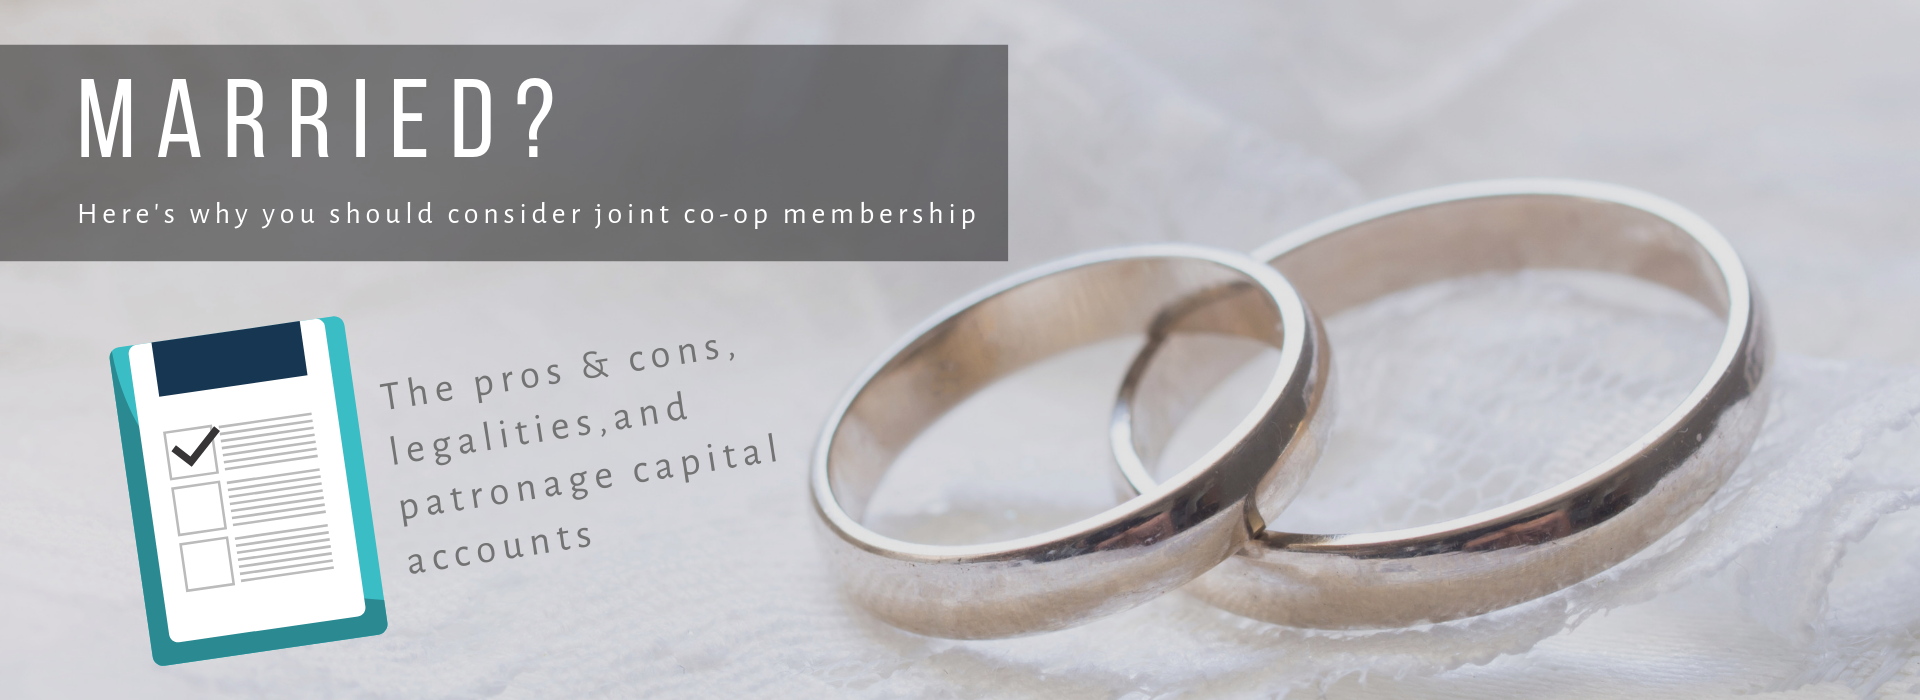 Why married couples should consider joint membership